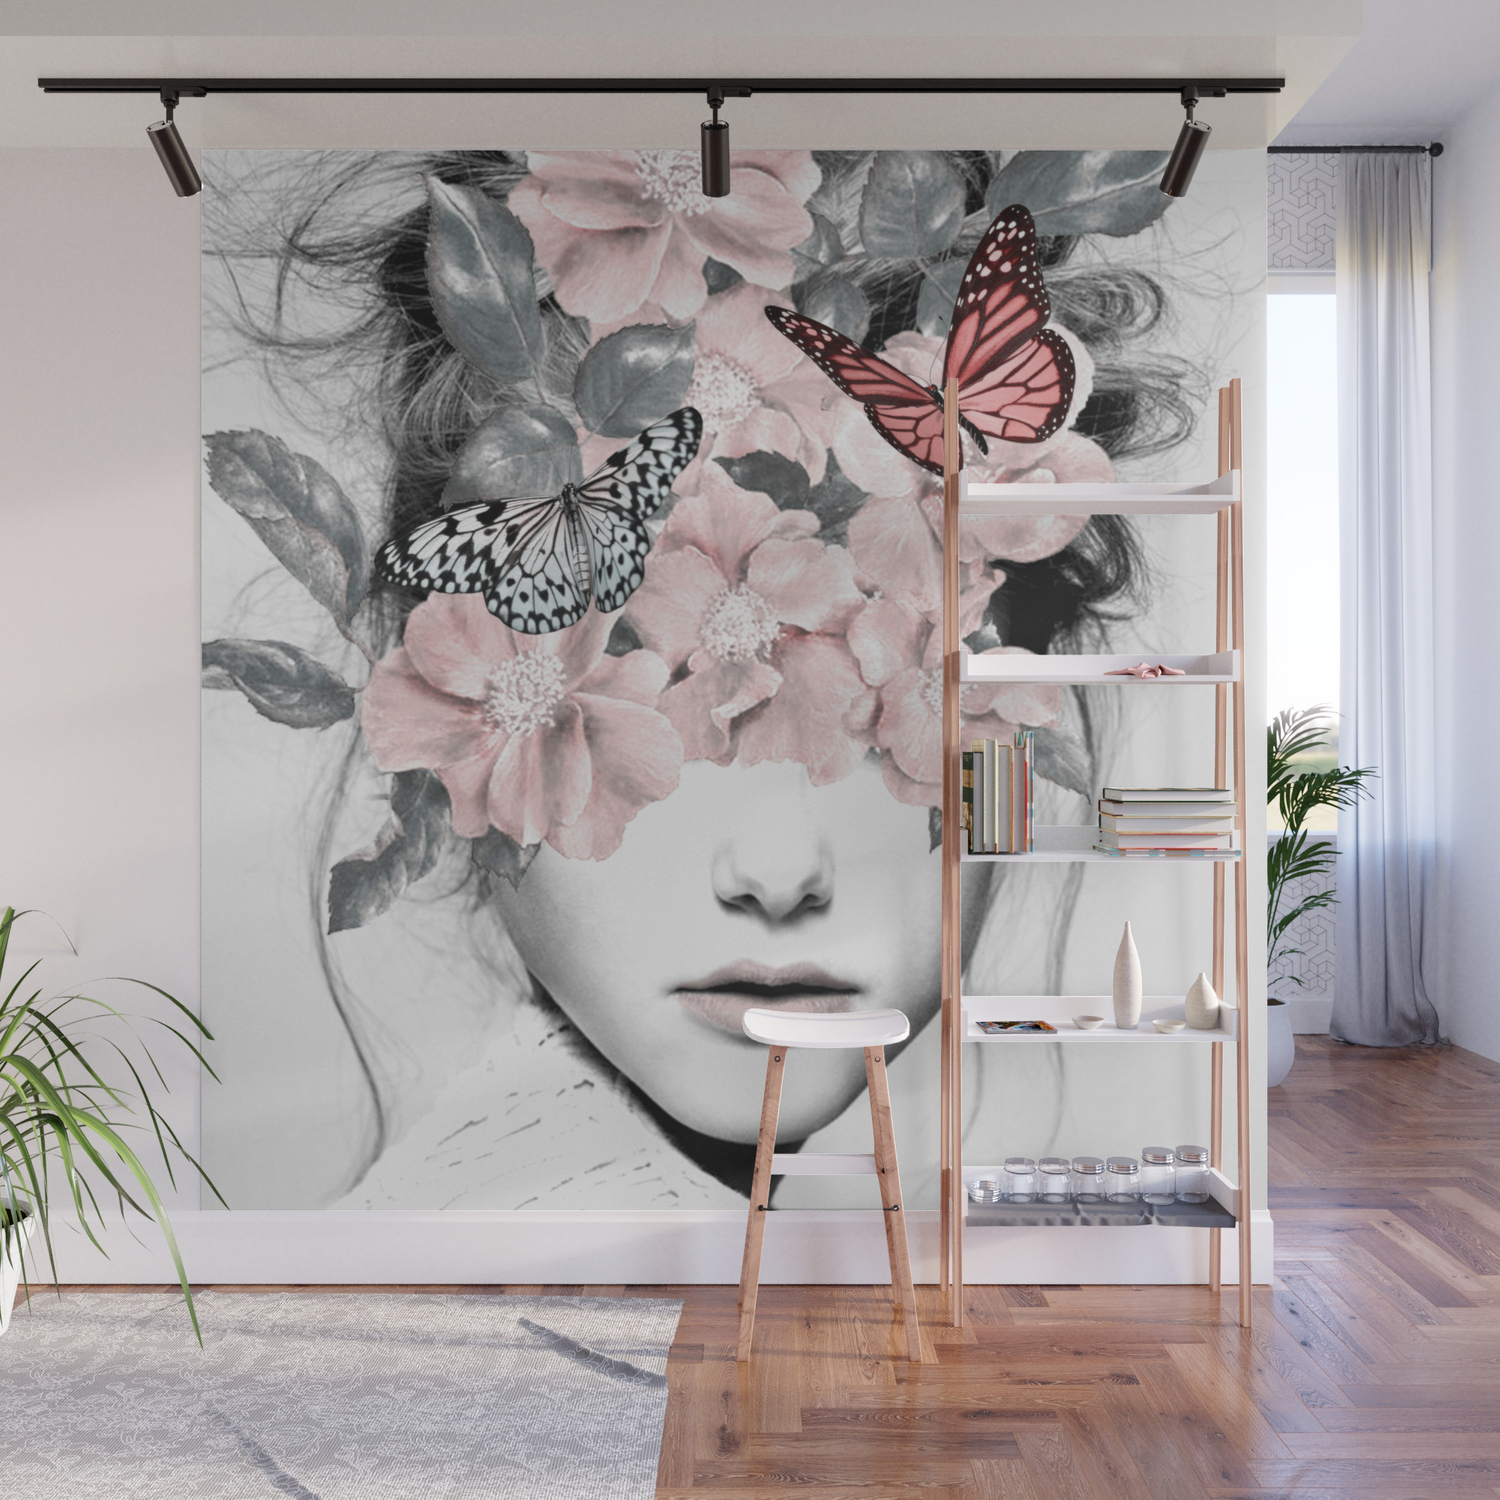 Woman With Flowers 10 Wall Mural By Dada22 Society6